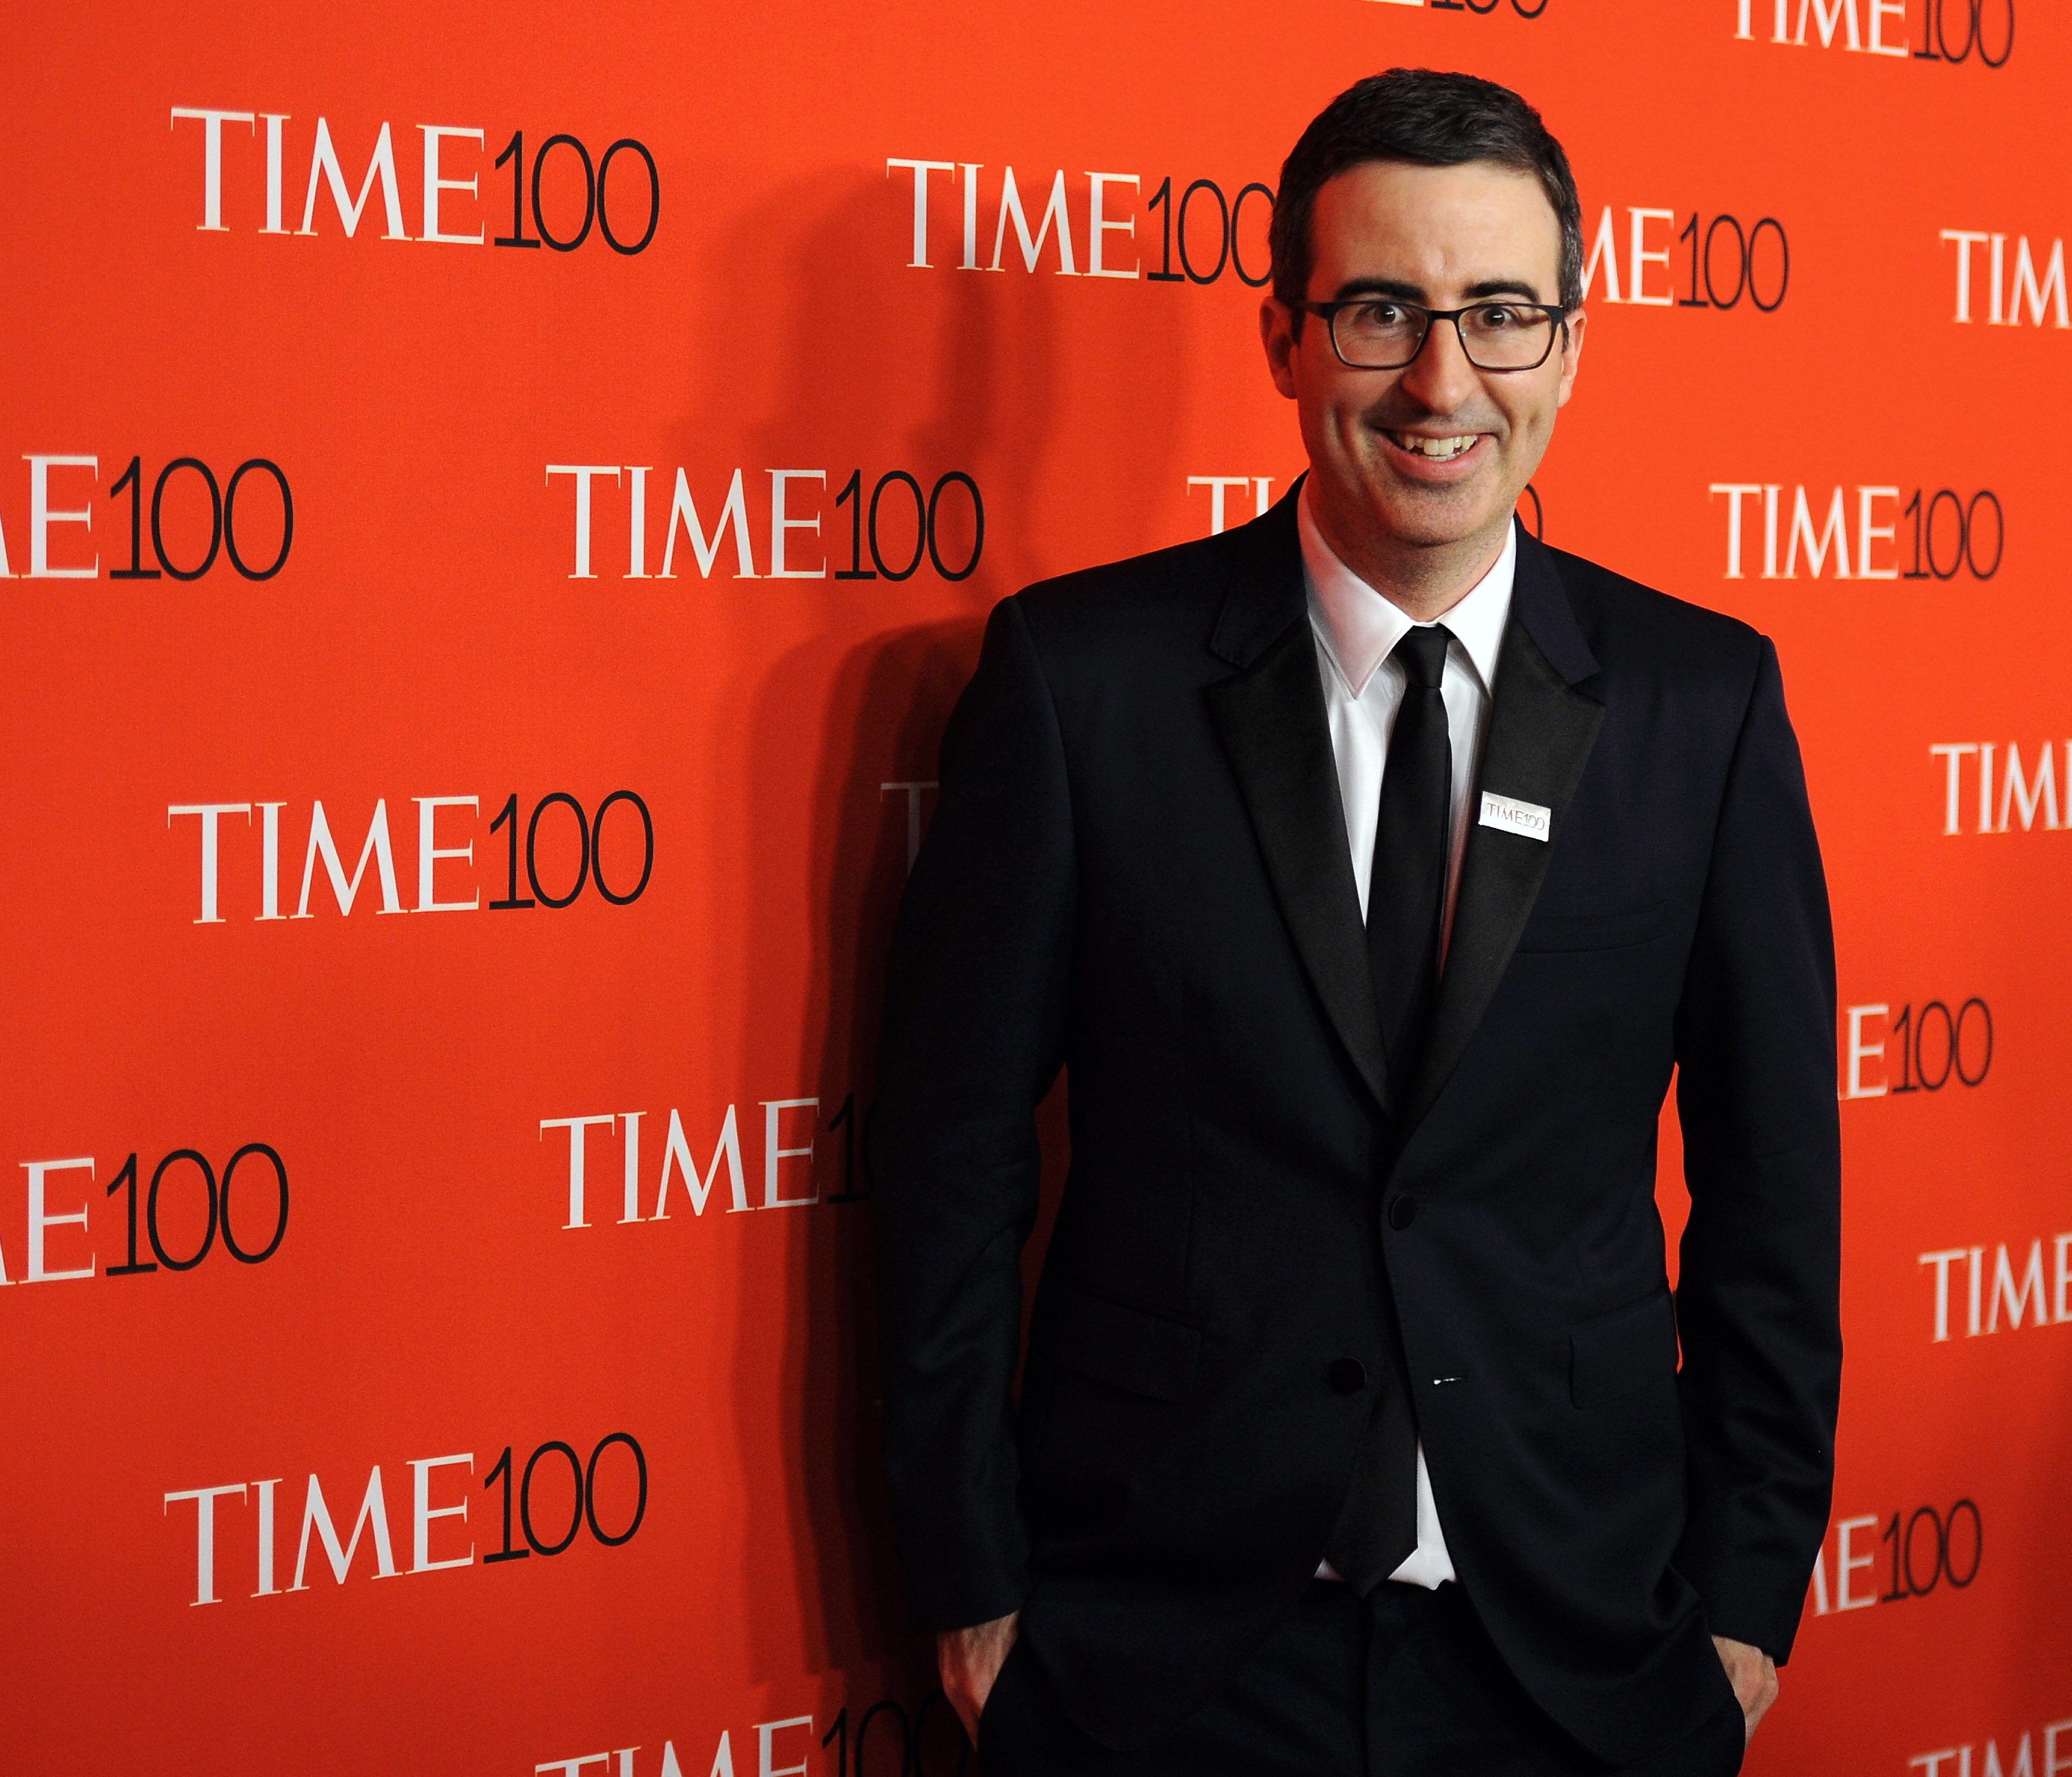 John Oliver attends the 2015 Time 100 Gala at Frederick P. Rose Hall, Jazz at Lincoln Center on April 21, 2015 in New York City.